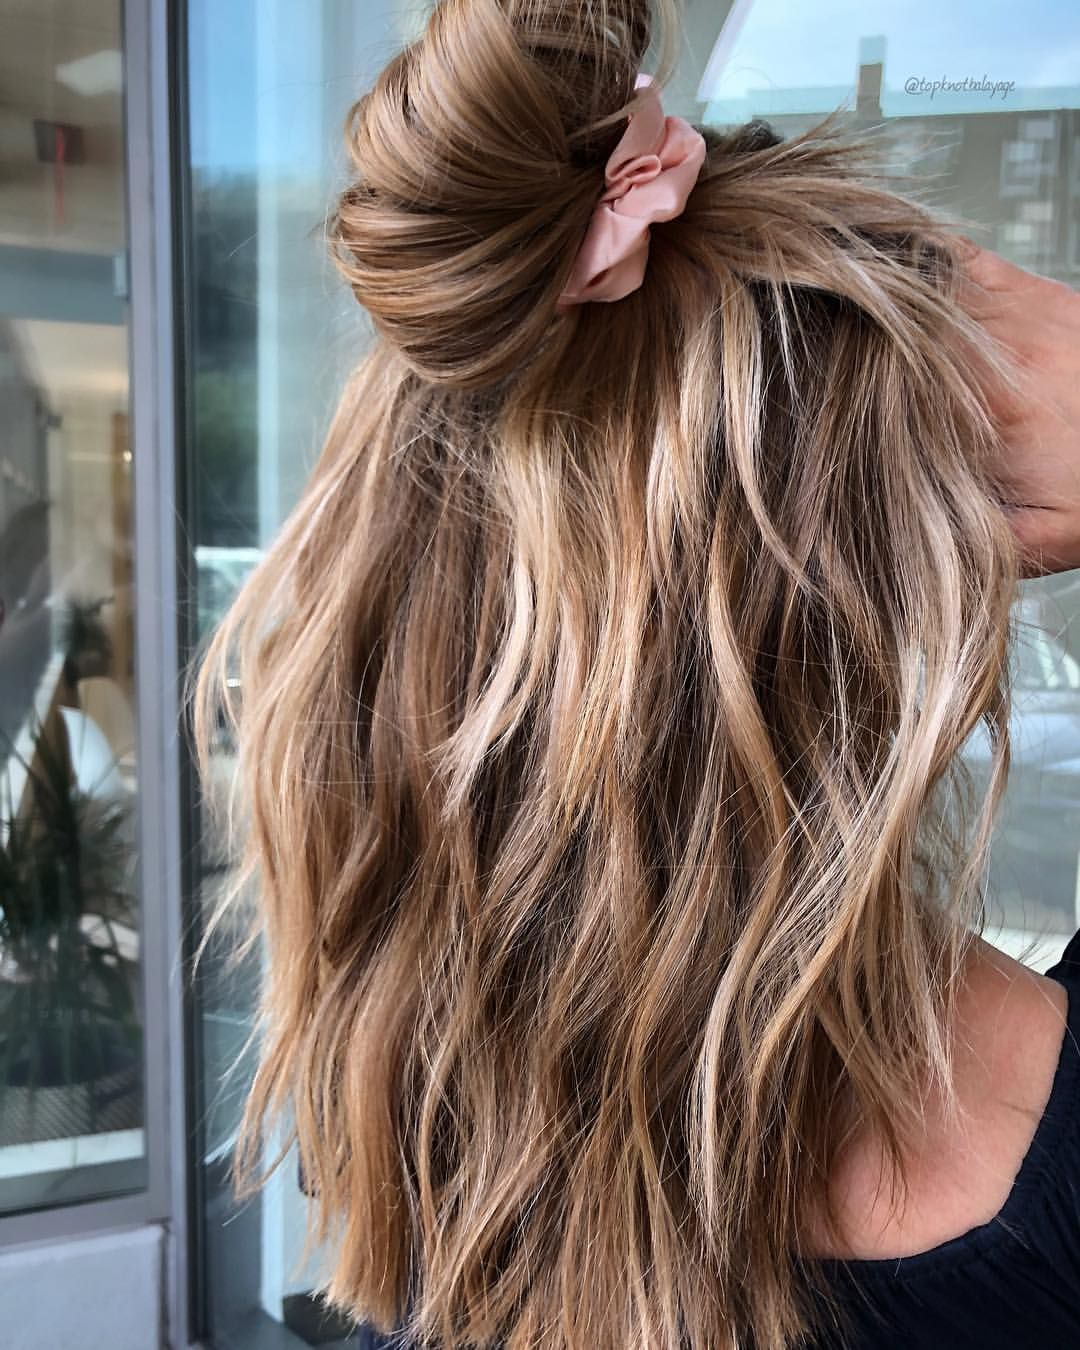 "You stick out of the crowd SCRUNCHIE it's a no brainer &#128113;&#127995;‍♀️&#127926; <a class=""pintag"" href=""/explore/withvirtue/"" title=""#withvirtue explore Pinterest"">#withvirtue</a> <a class=""pintag"" href=""/explore/virtueambassador/"" title=""#virtueambassador explore Pinterest"">#virtueambassador</a><p><a href=""http://www.homeinteriordesign.org/2018/02/short-guide-to-interior-decoration.html"">Short guide to interior decoration</a></p>"